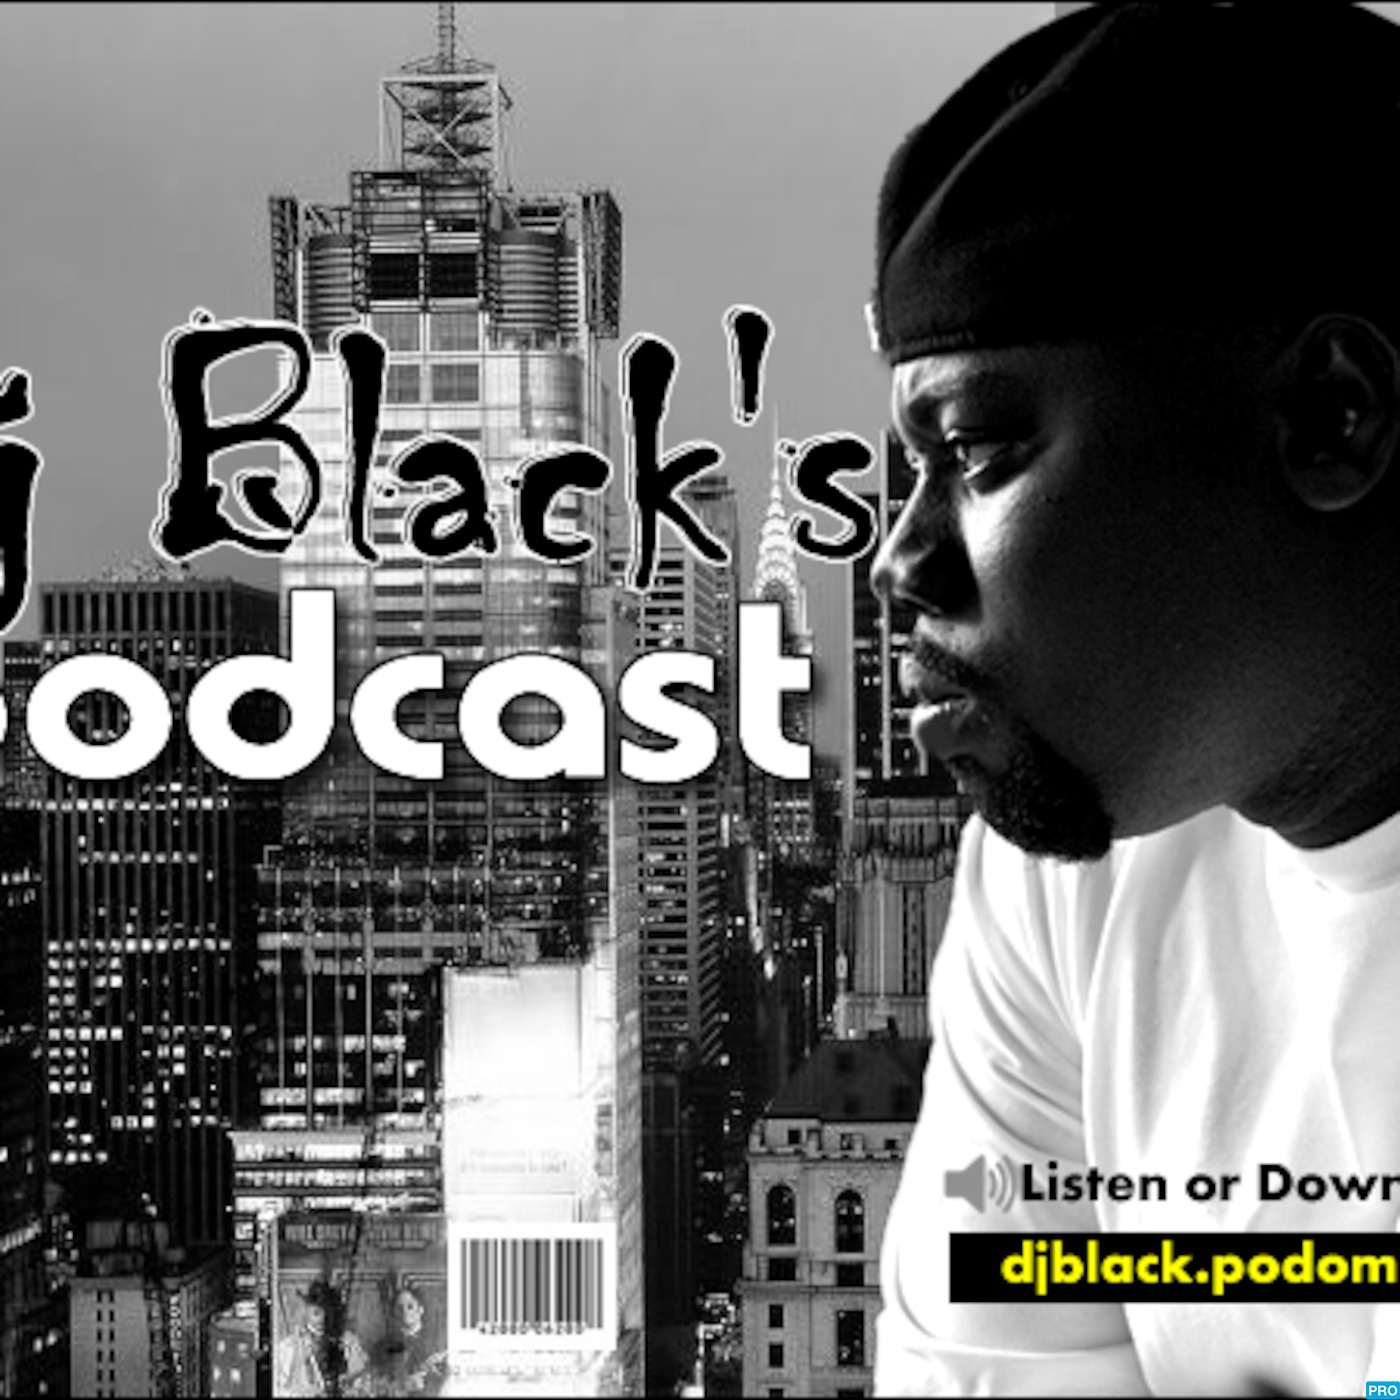 DJ BLACK'S podcast